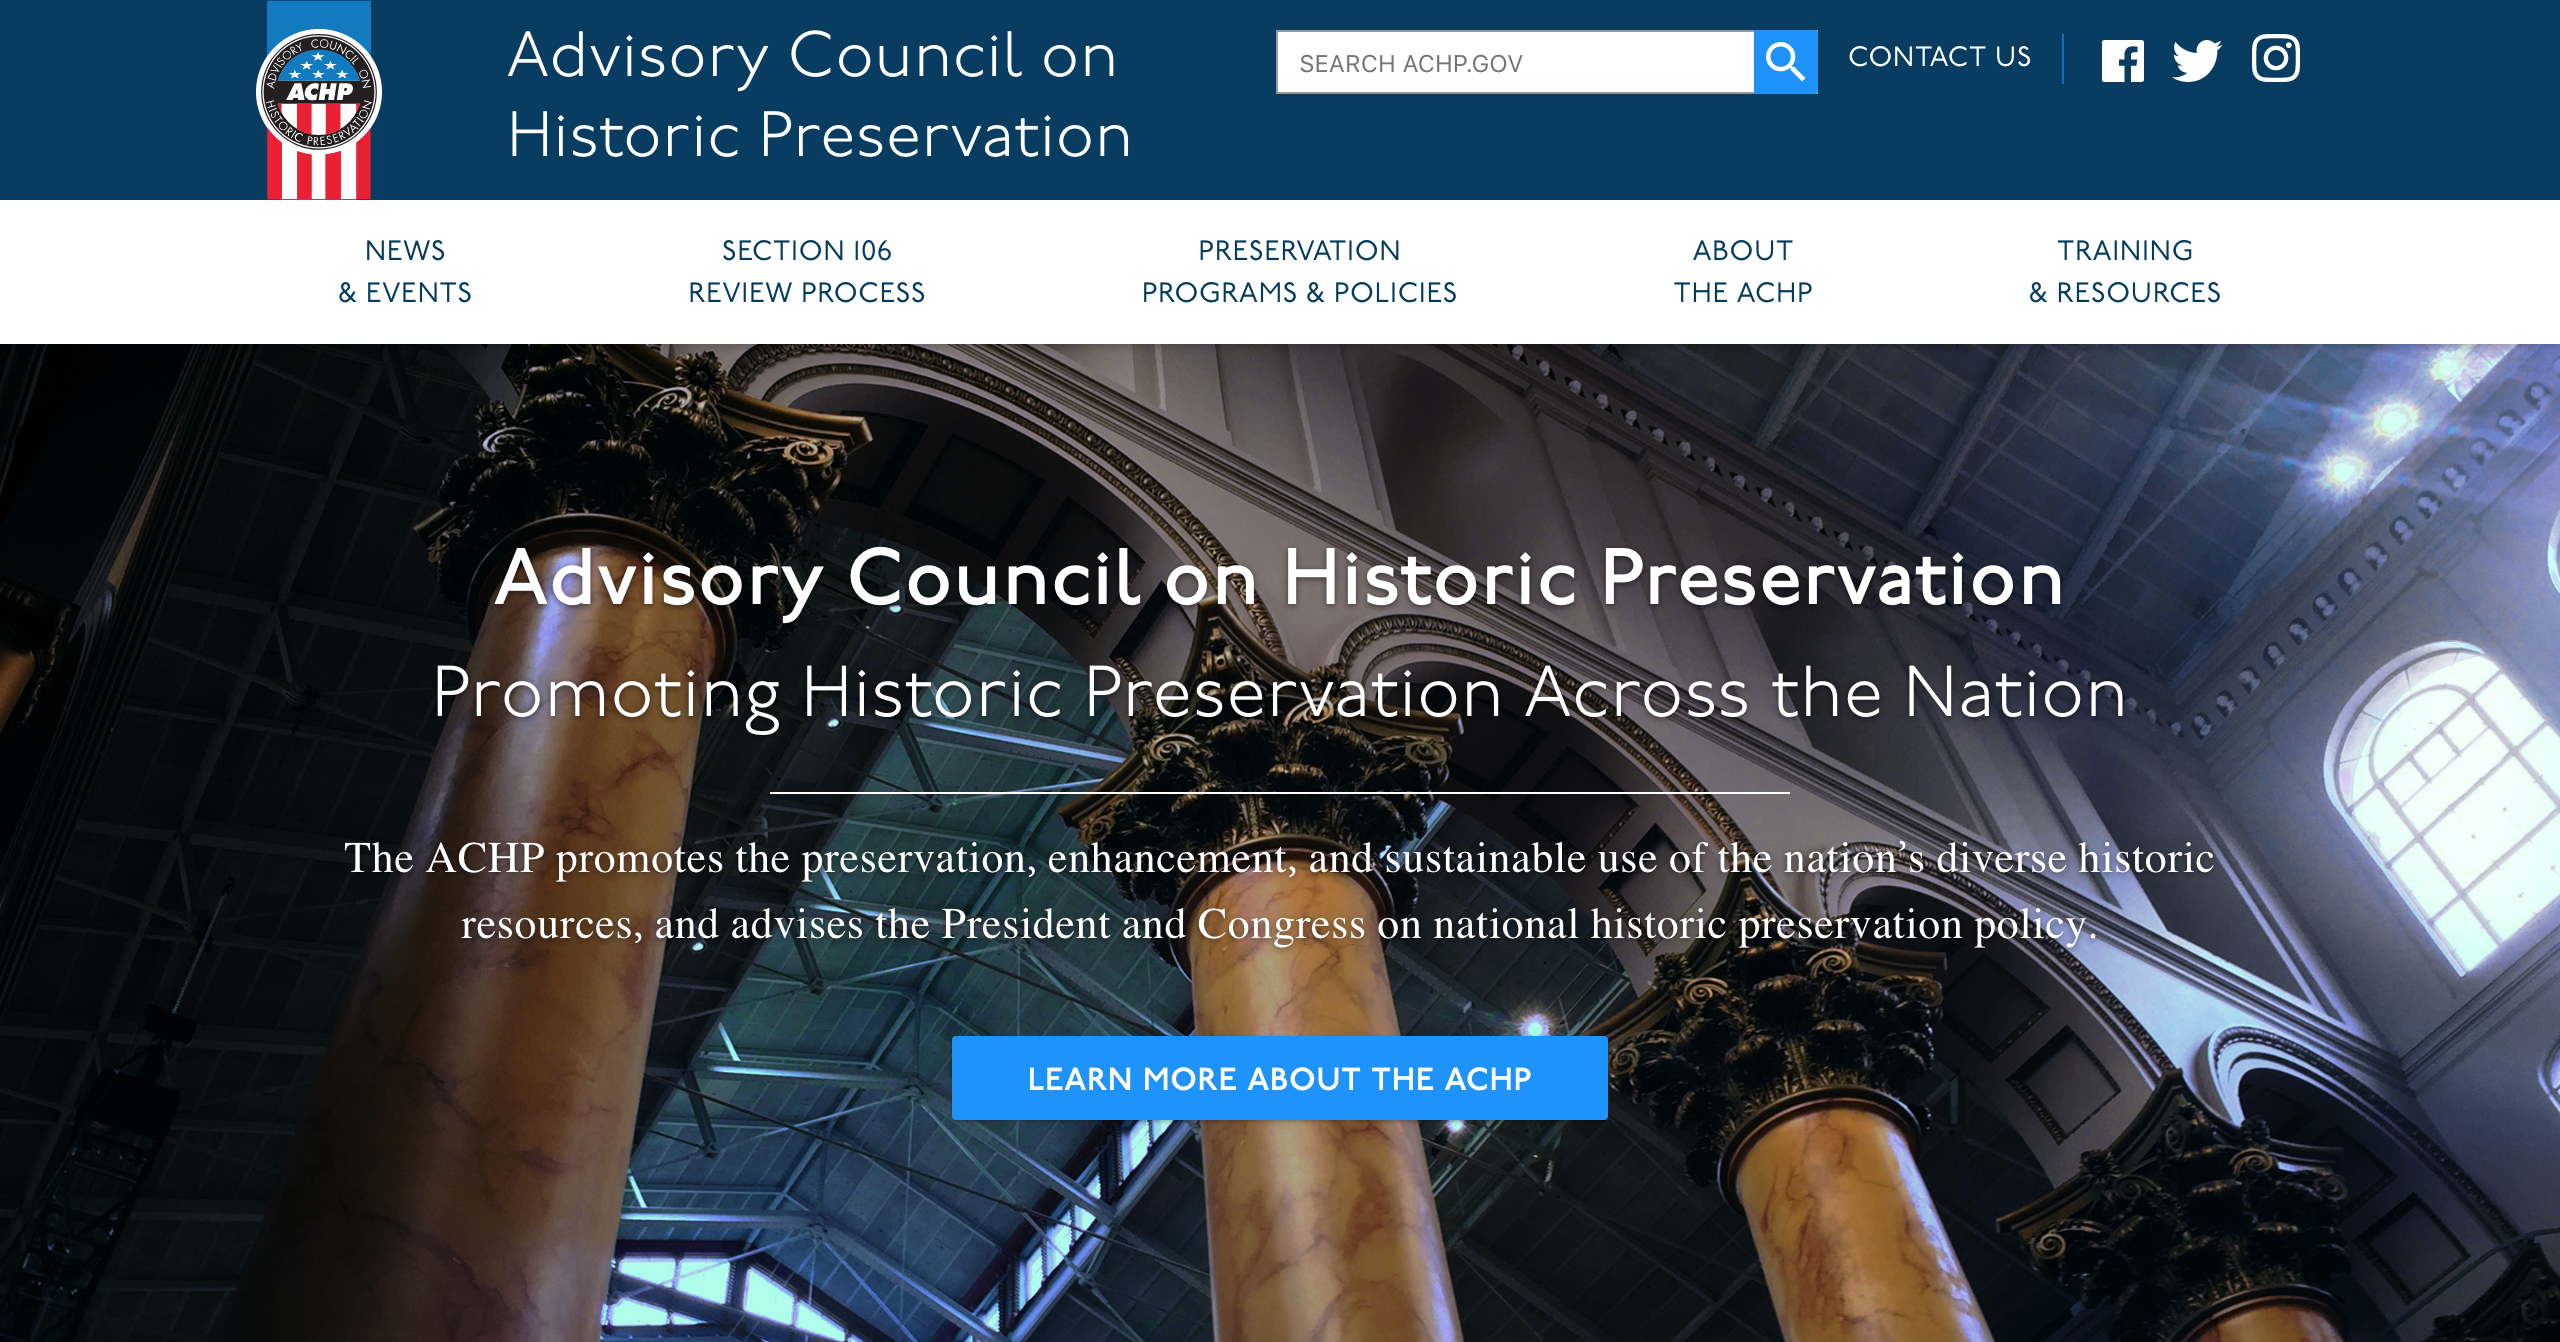 Advisory Council on Historic Preservation website